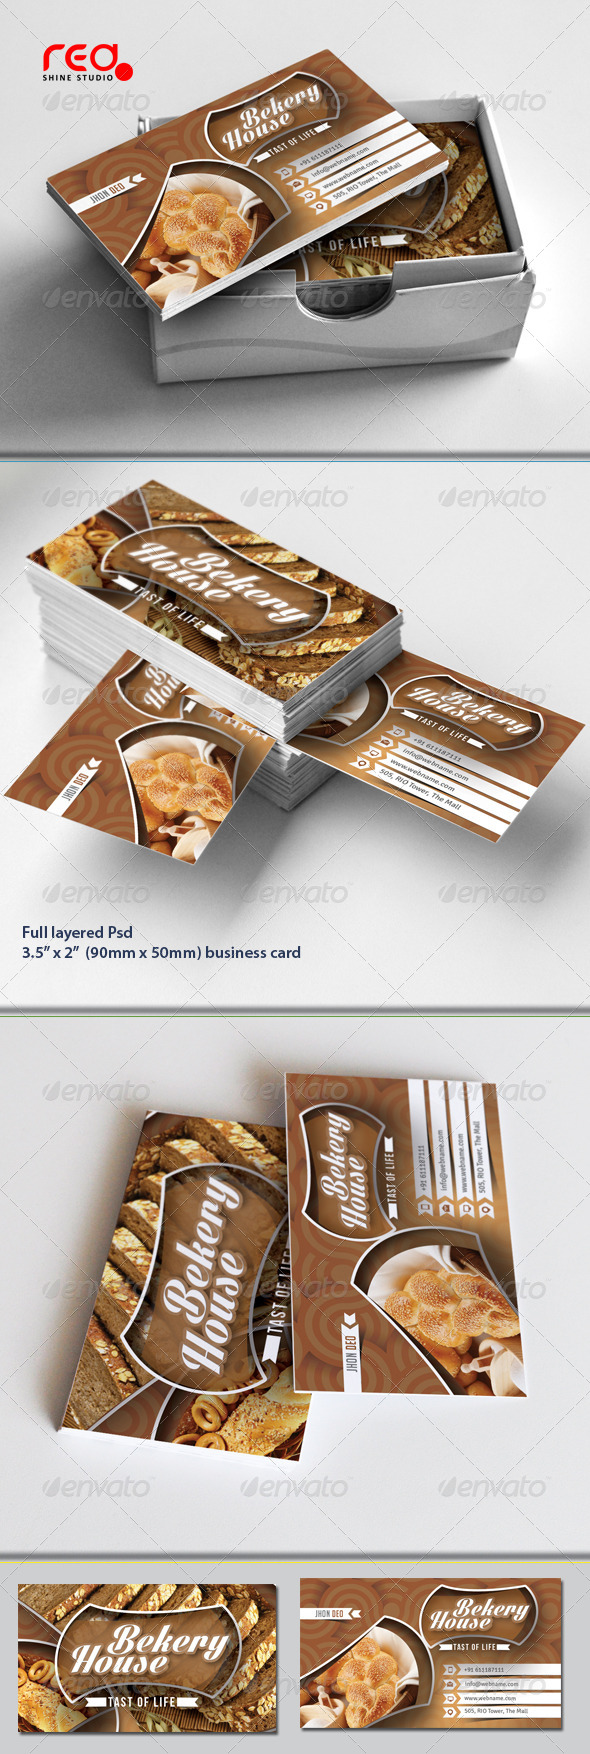 GraphicRiver Bekery House Business Card Set 5414170